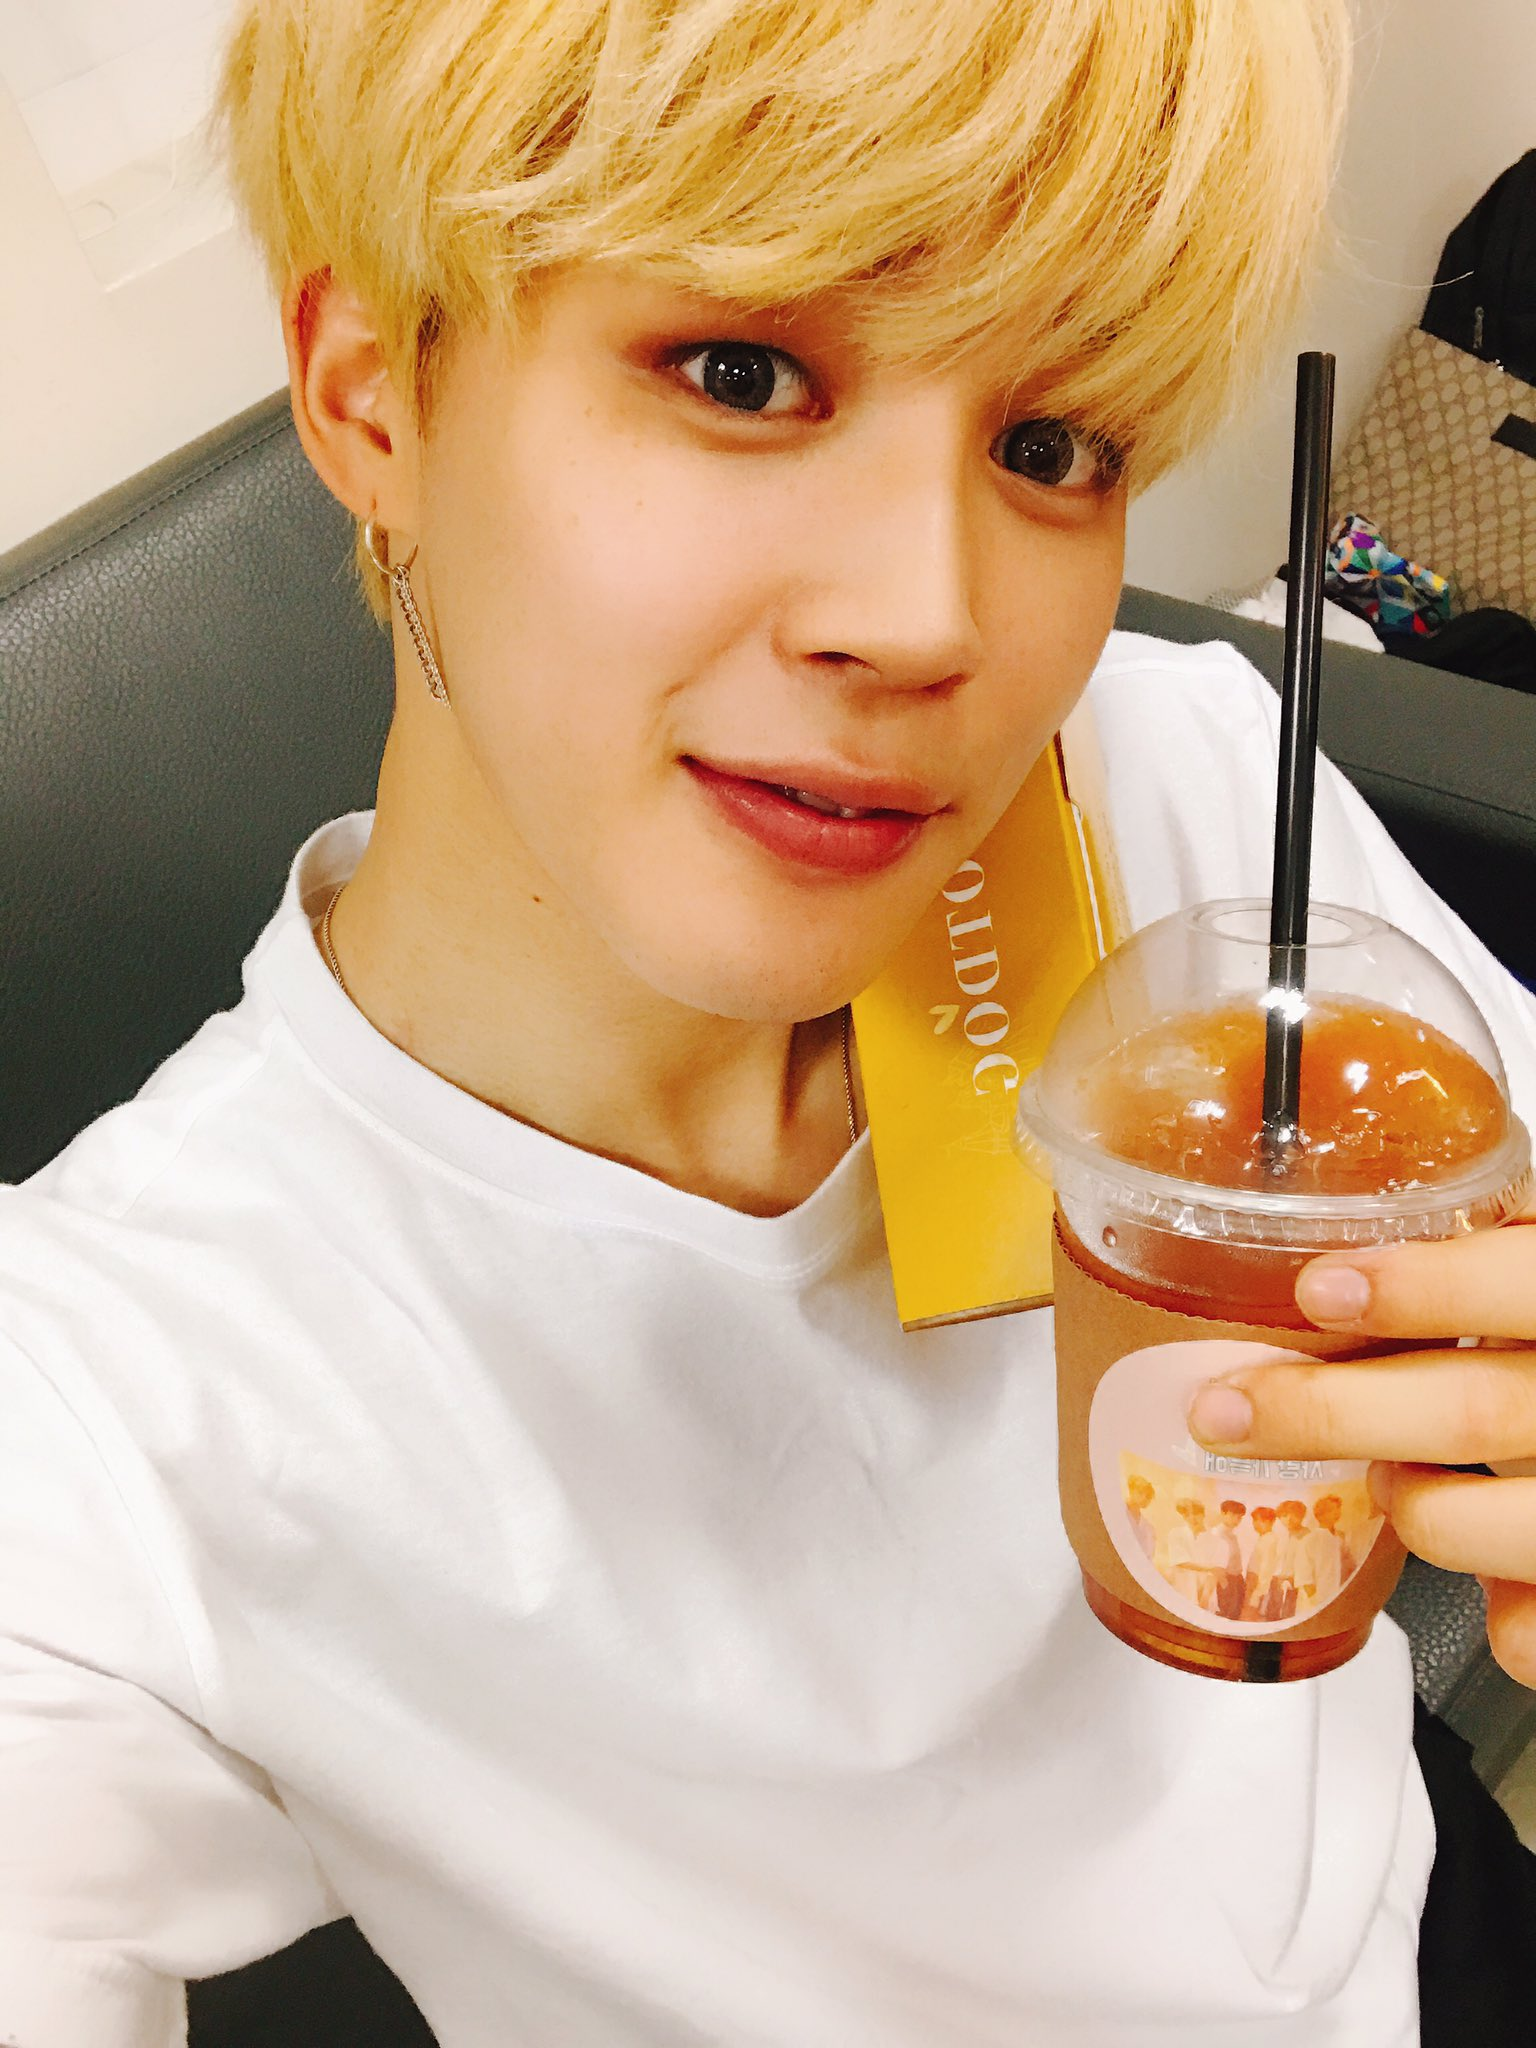 맛나게 먹어요❤️ #JIMIN https://t.co/0kmHk51uN1